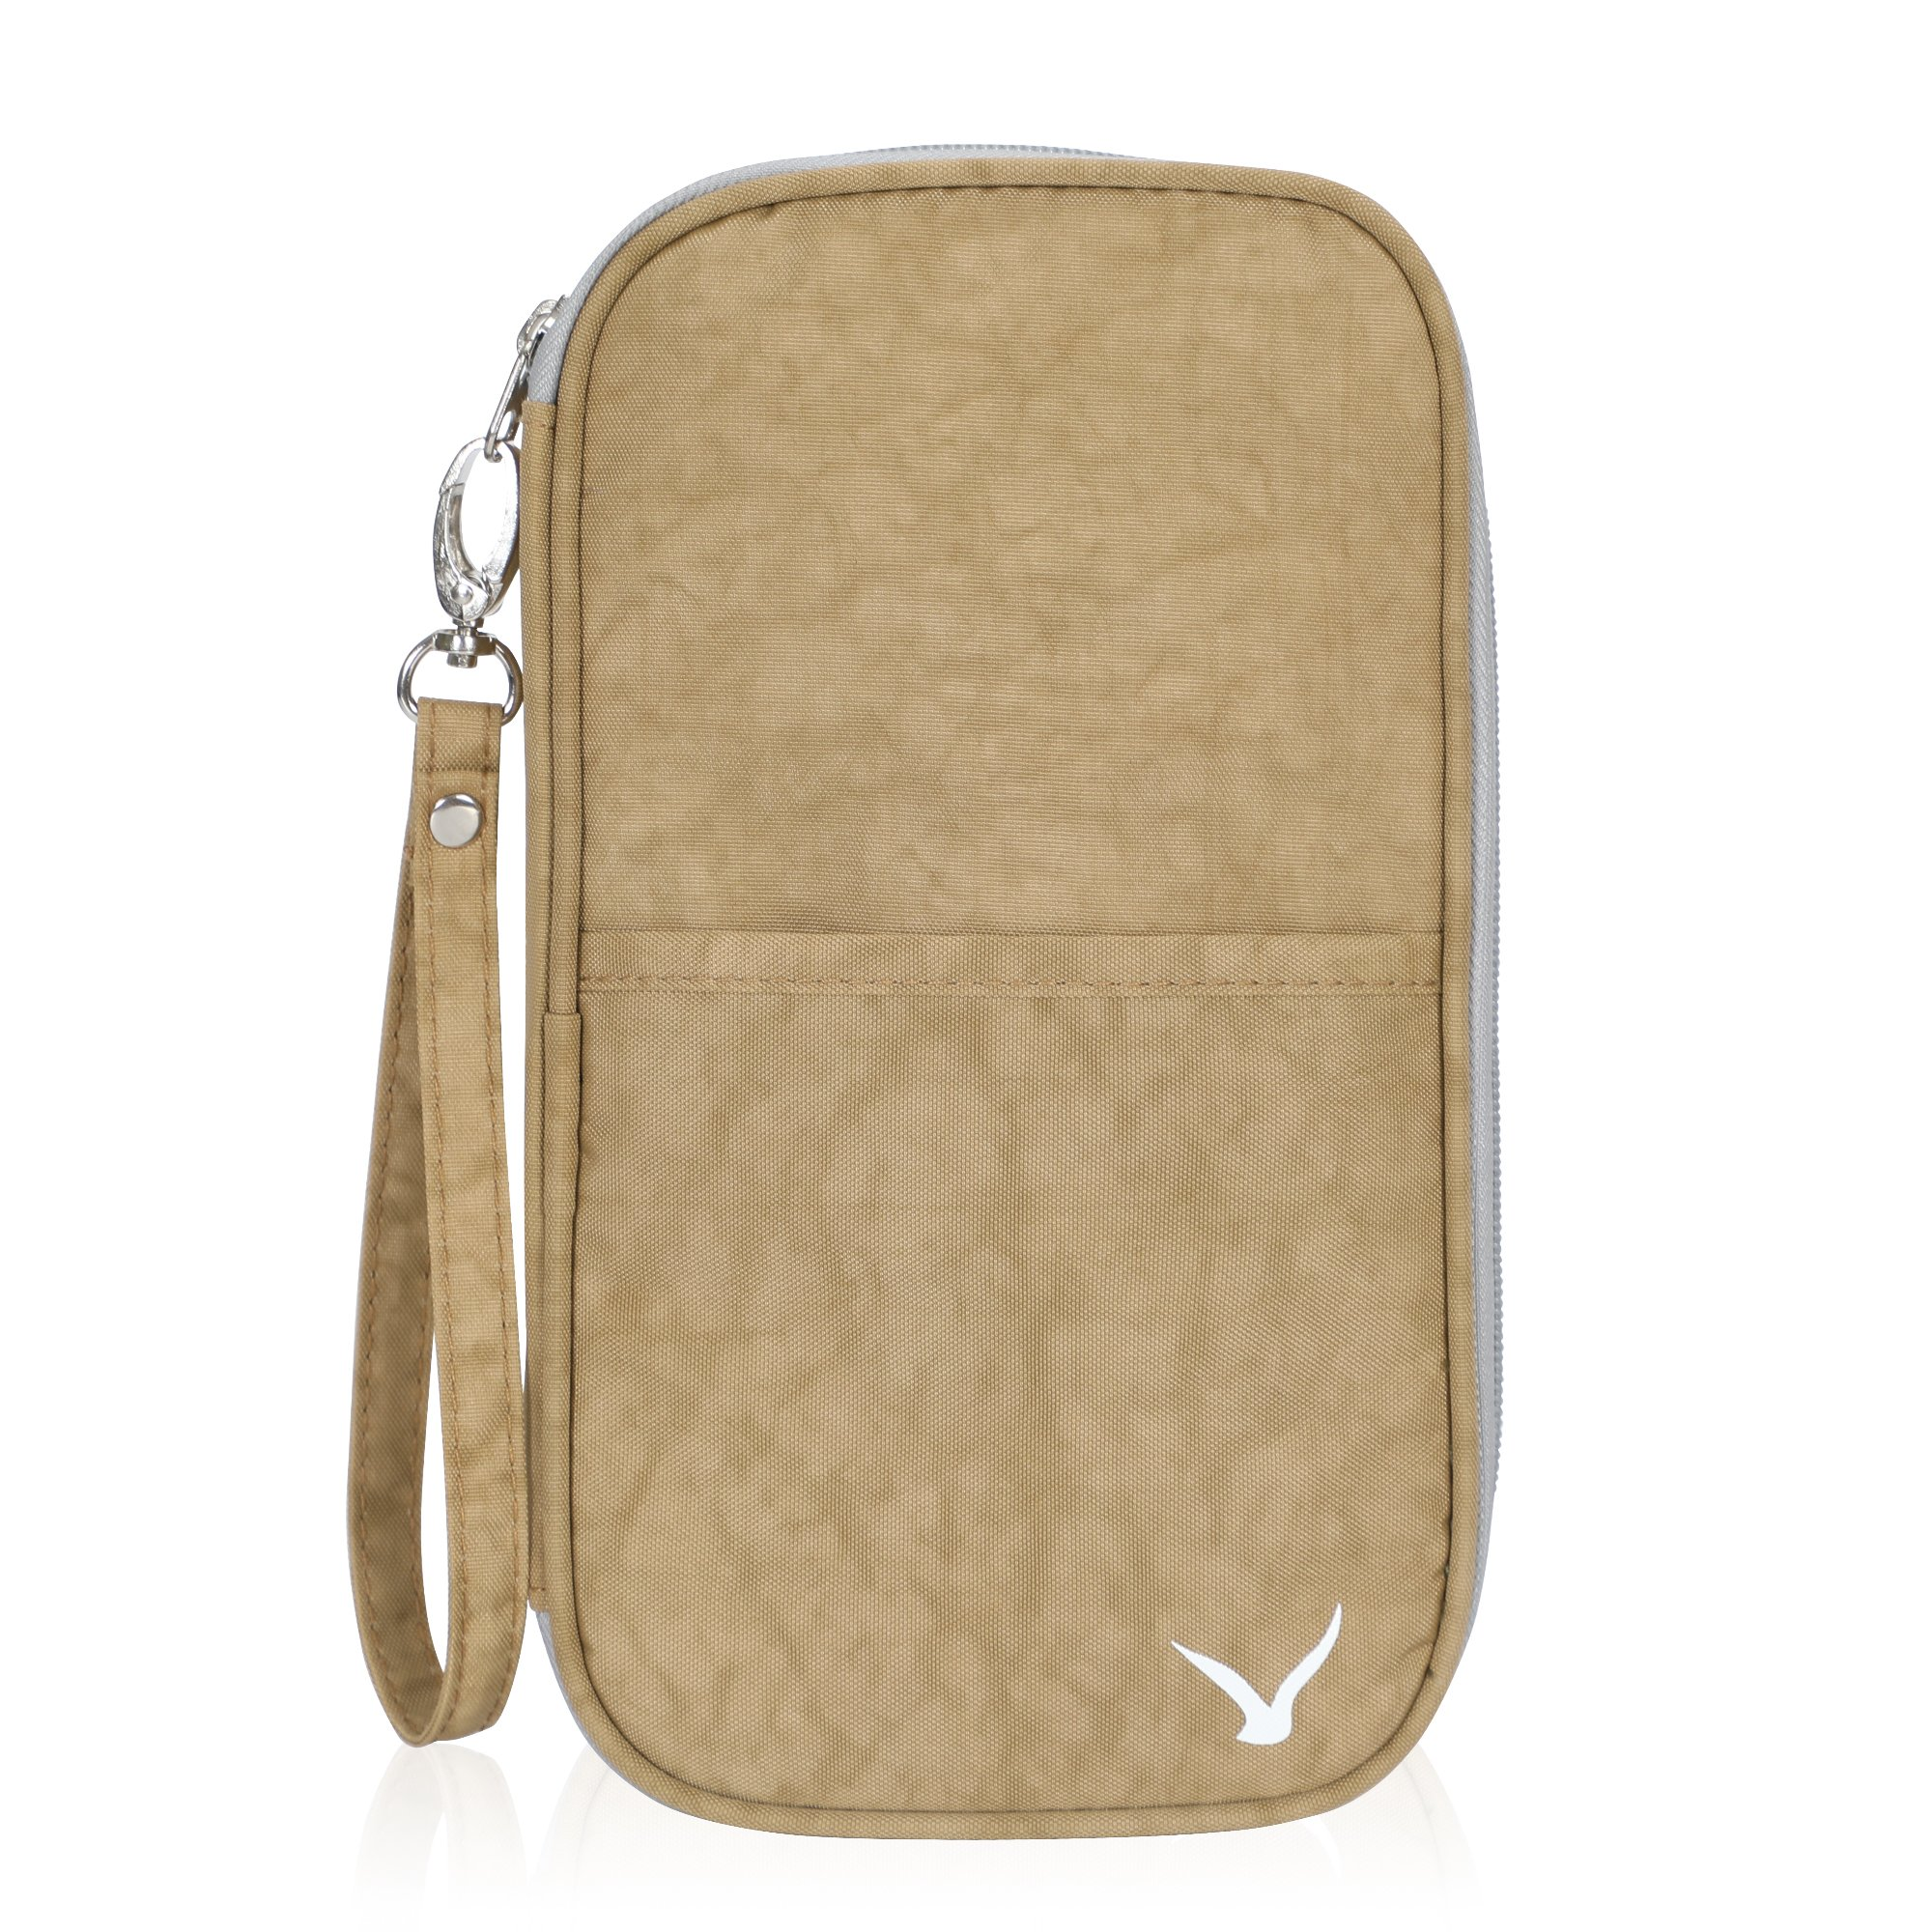 Hynes Eagle Travel Passport Protection Wallet Passport Holder Credit Card Wallet Khaki RFID Blocking